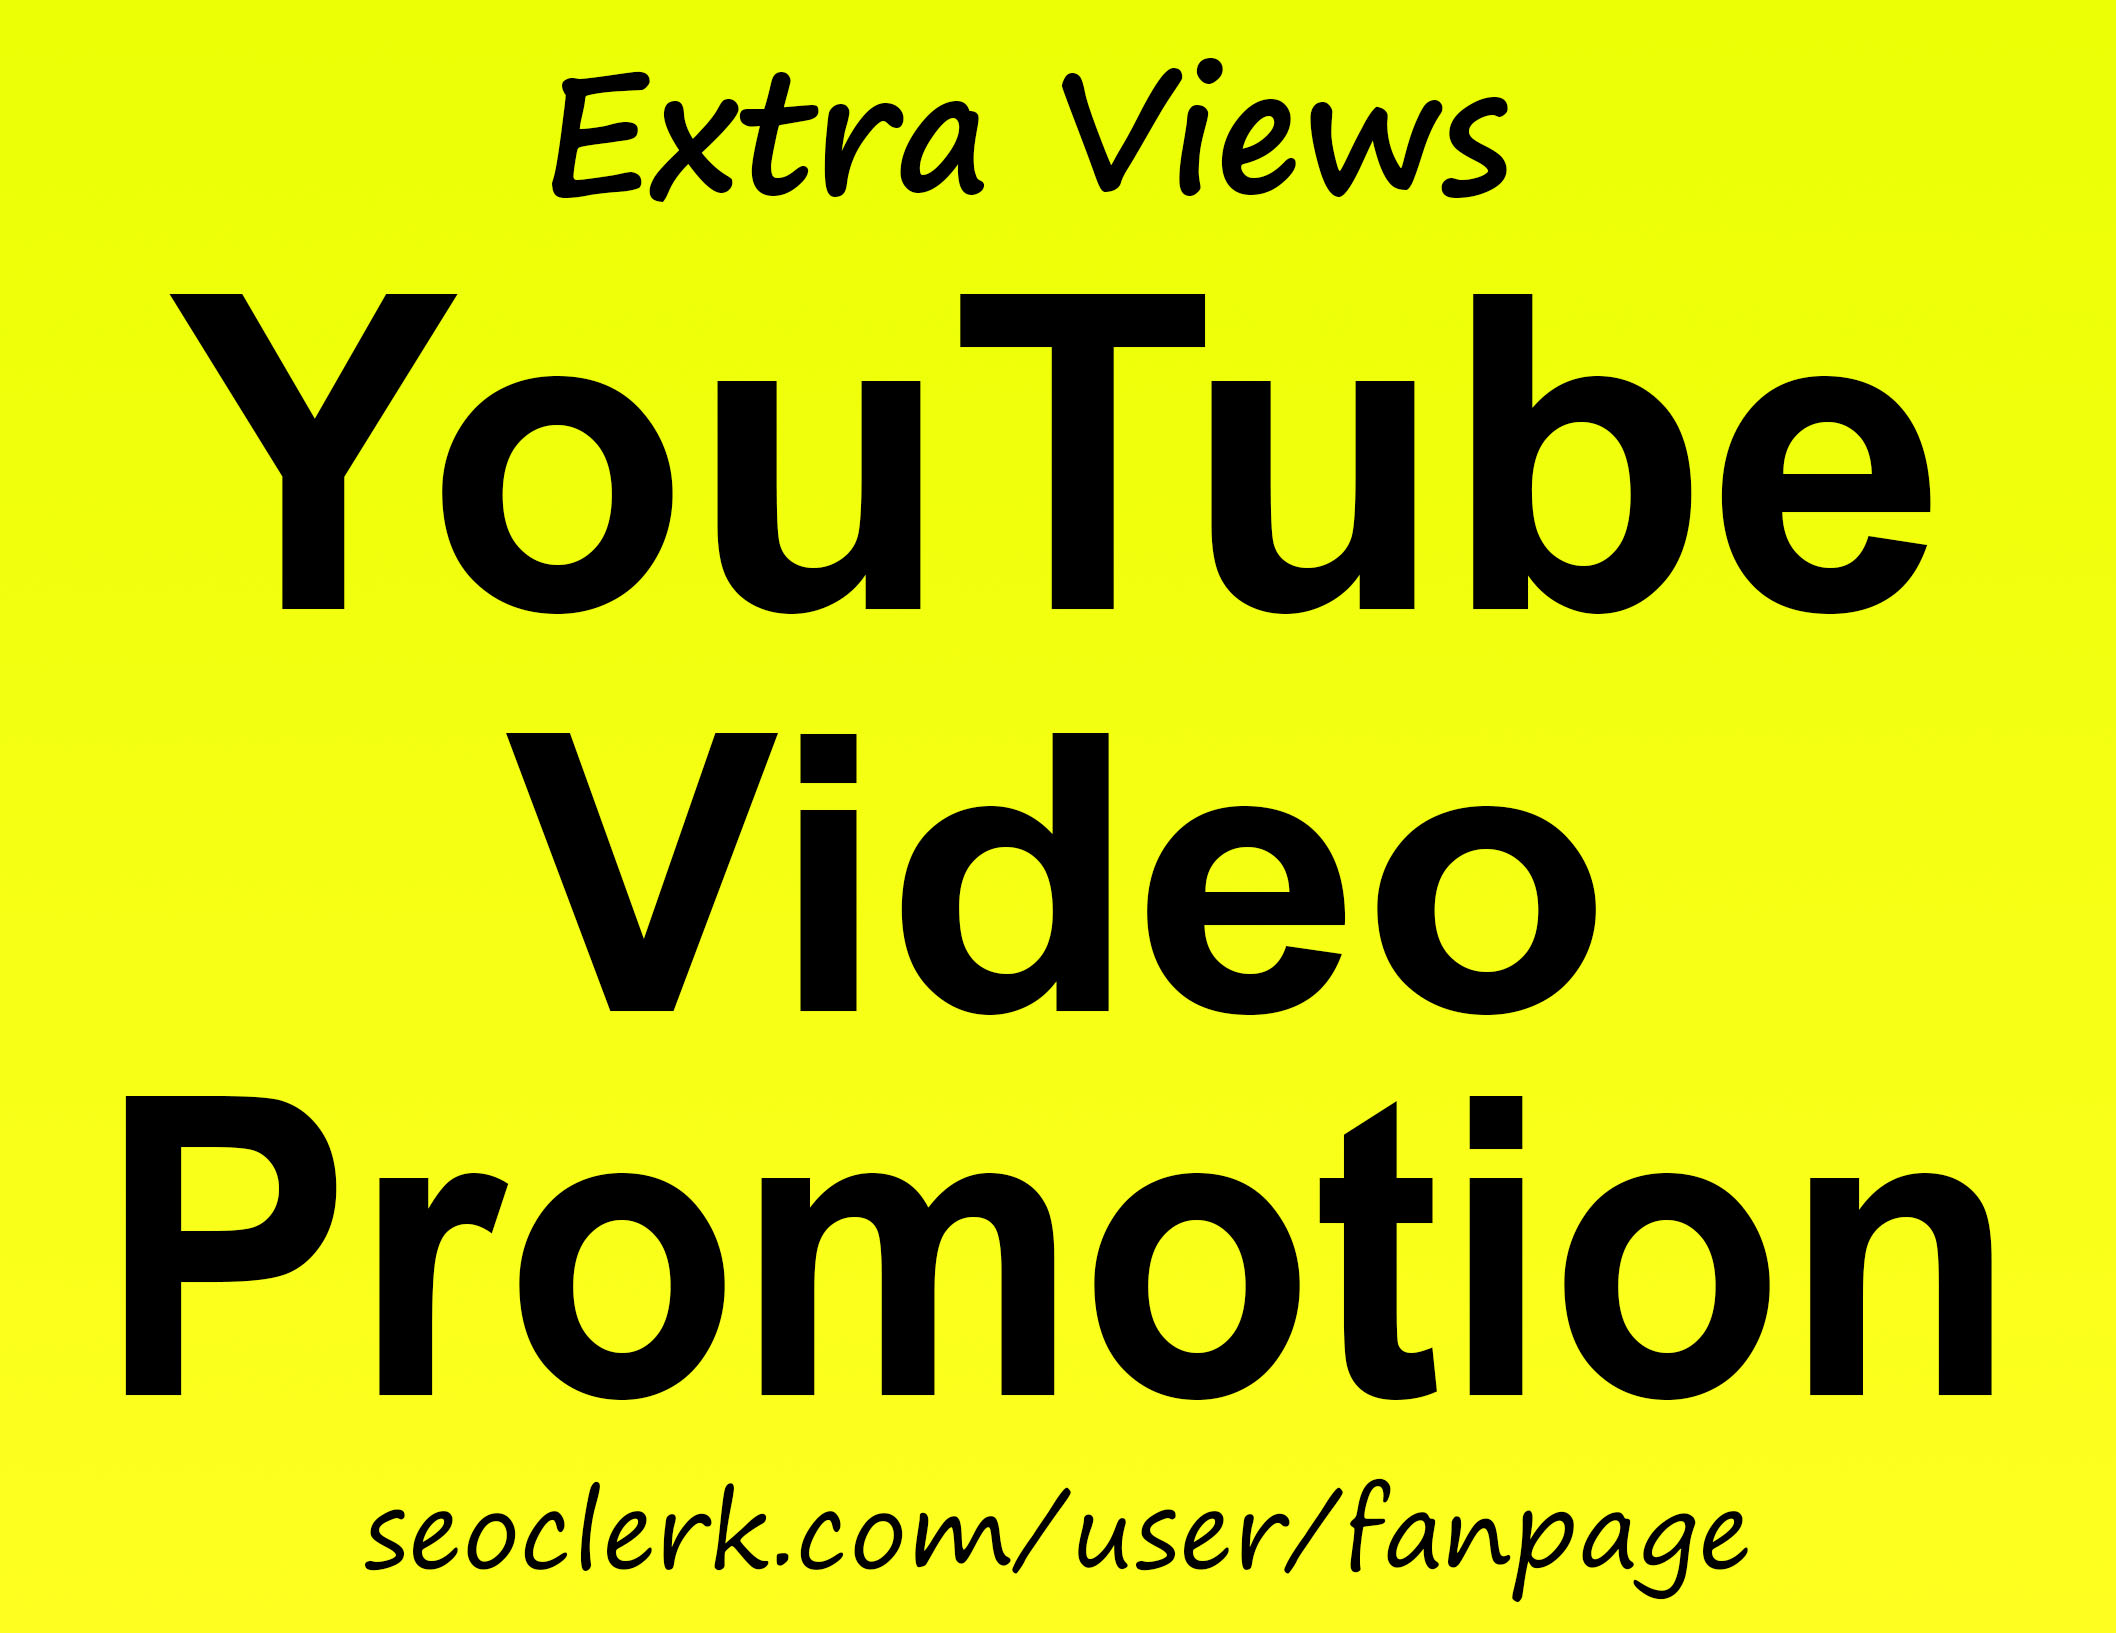 YouTube Video Promotion Via World Wide Audience